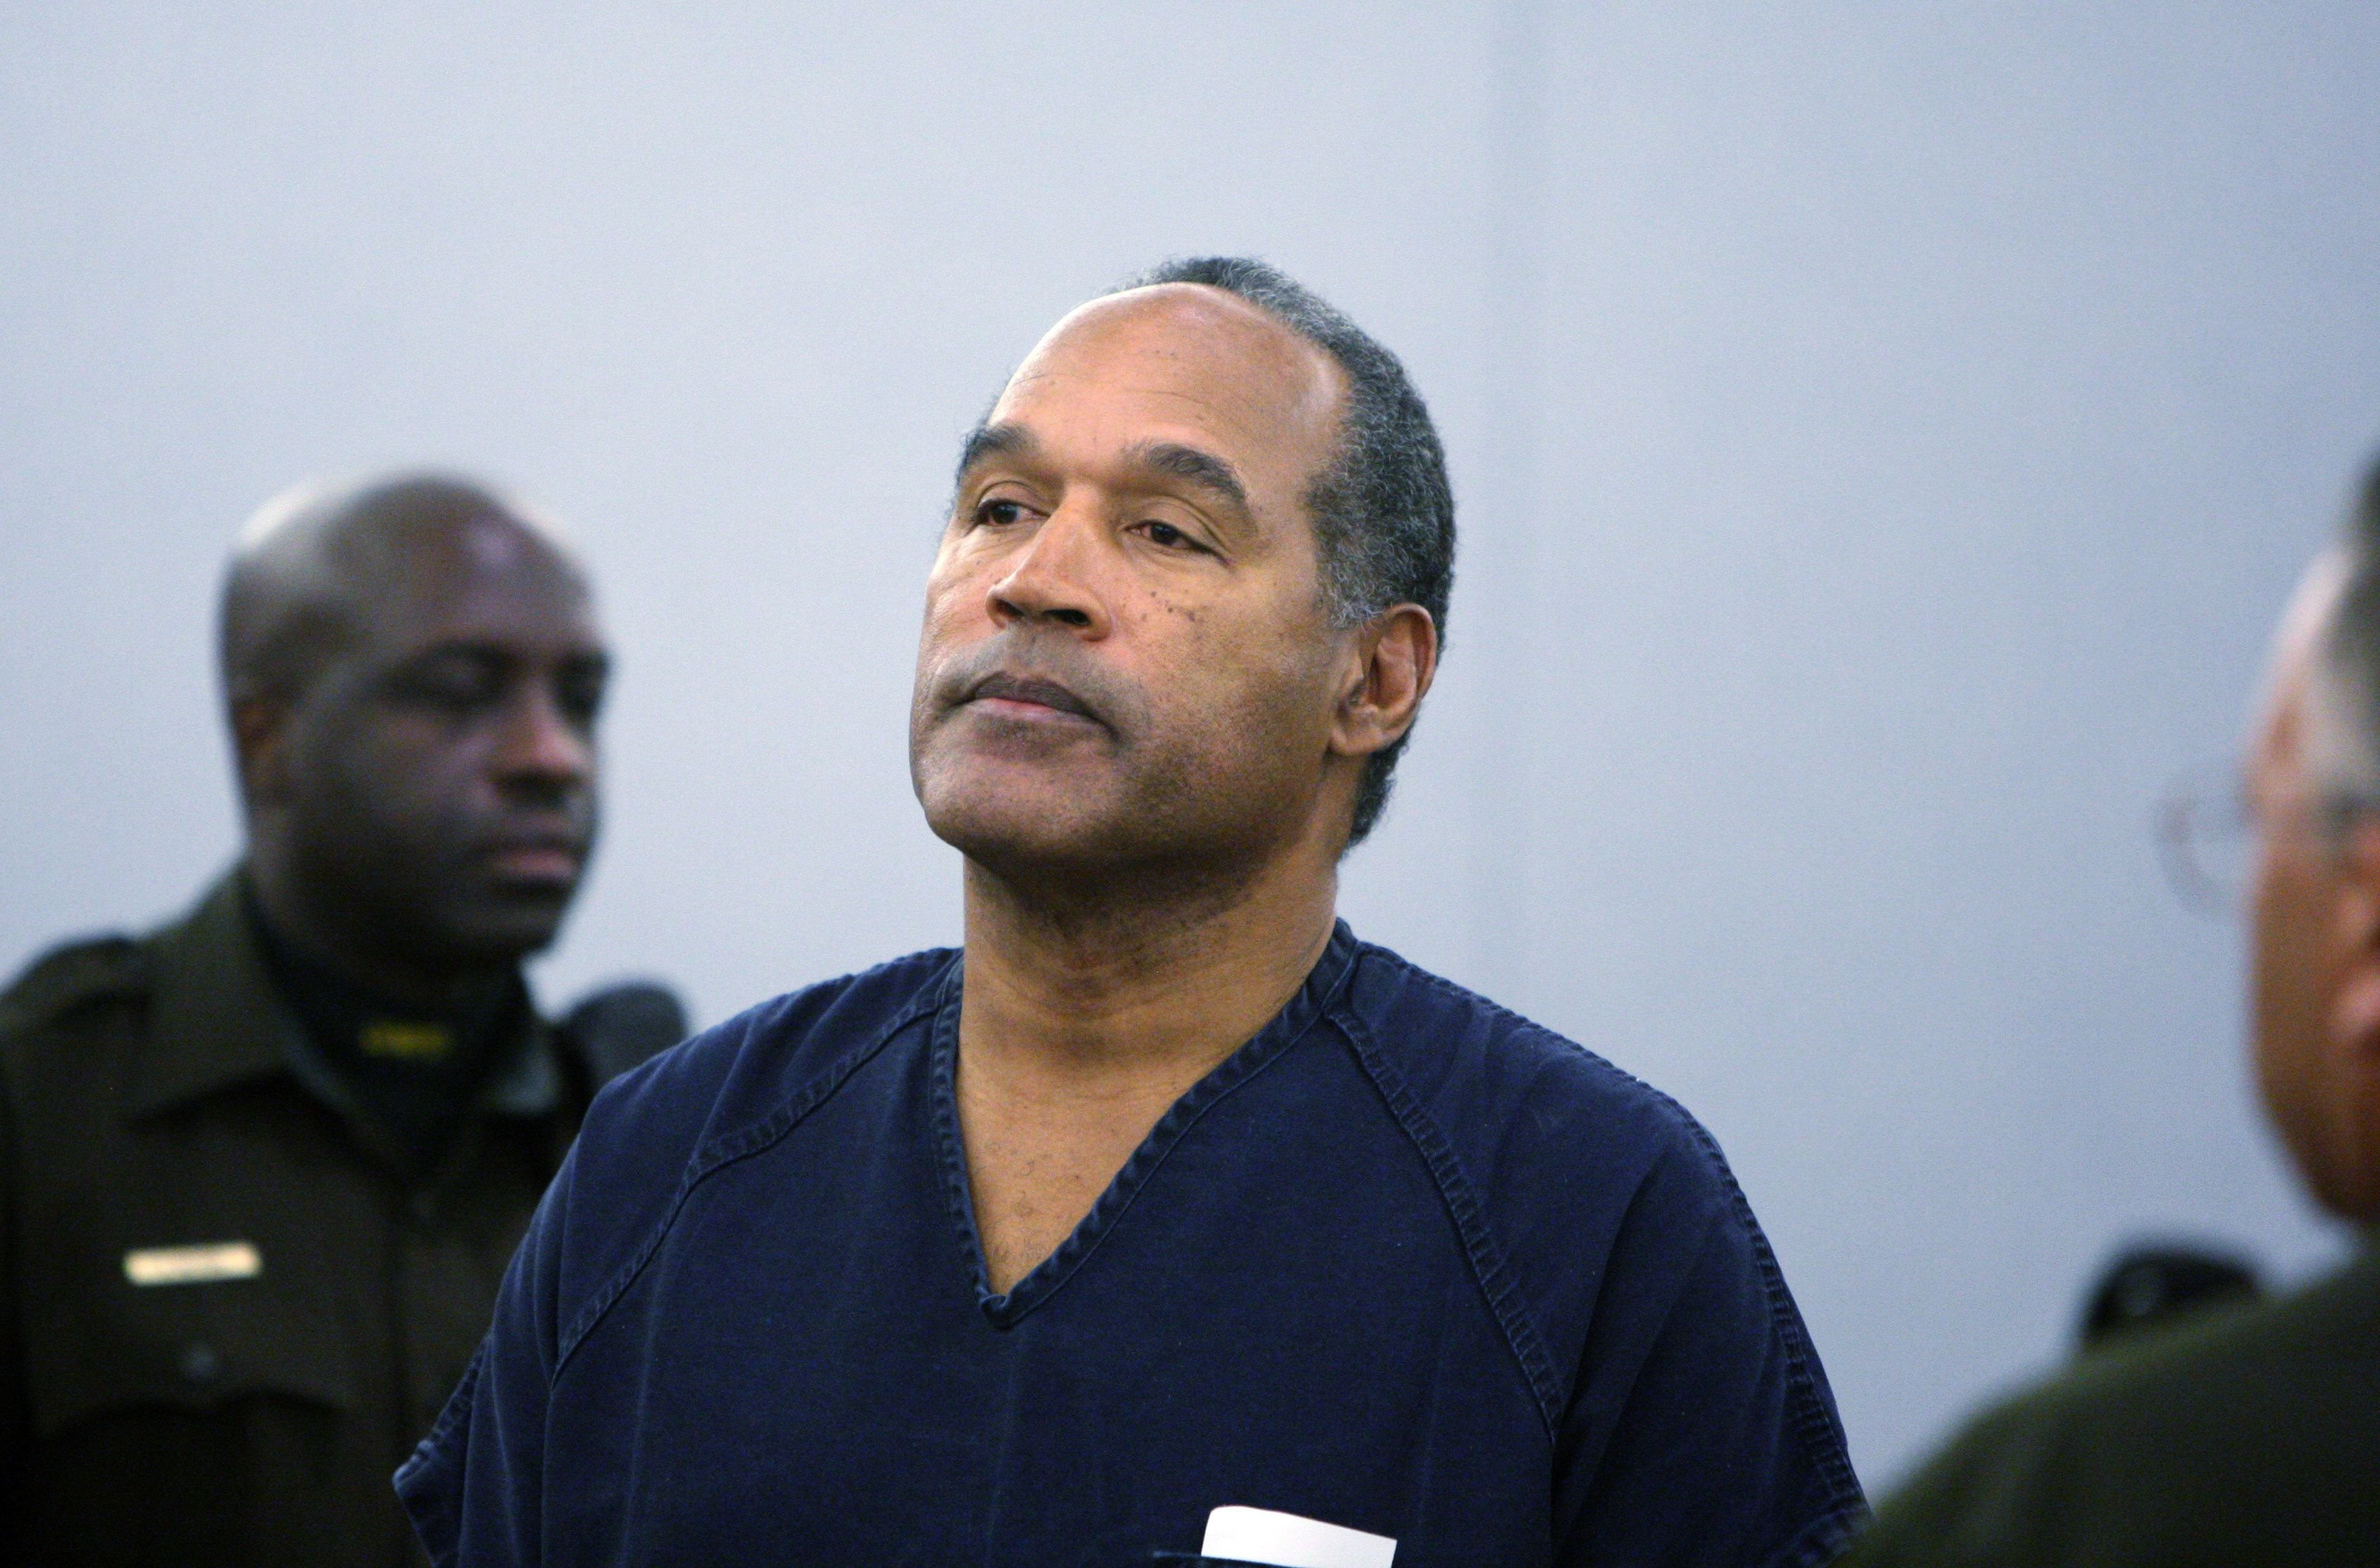 O.J. Simpson at his sentencing at the Clark County Regional Justice Center in 2008 in Las Vegas, Nevada | Source: Getty Images